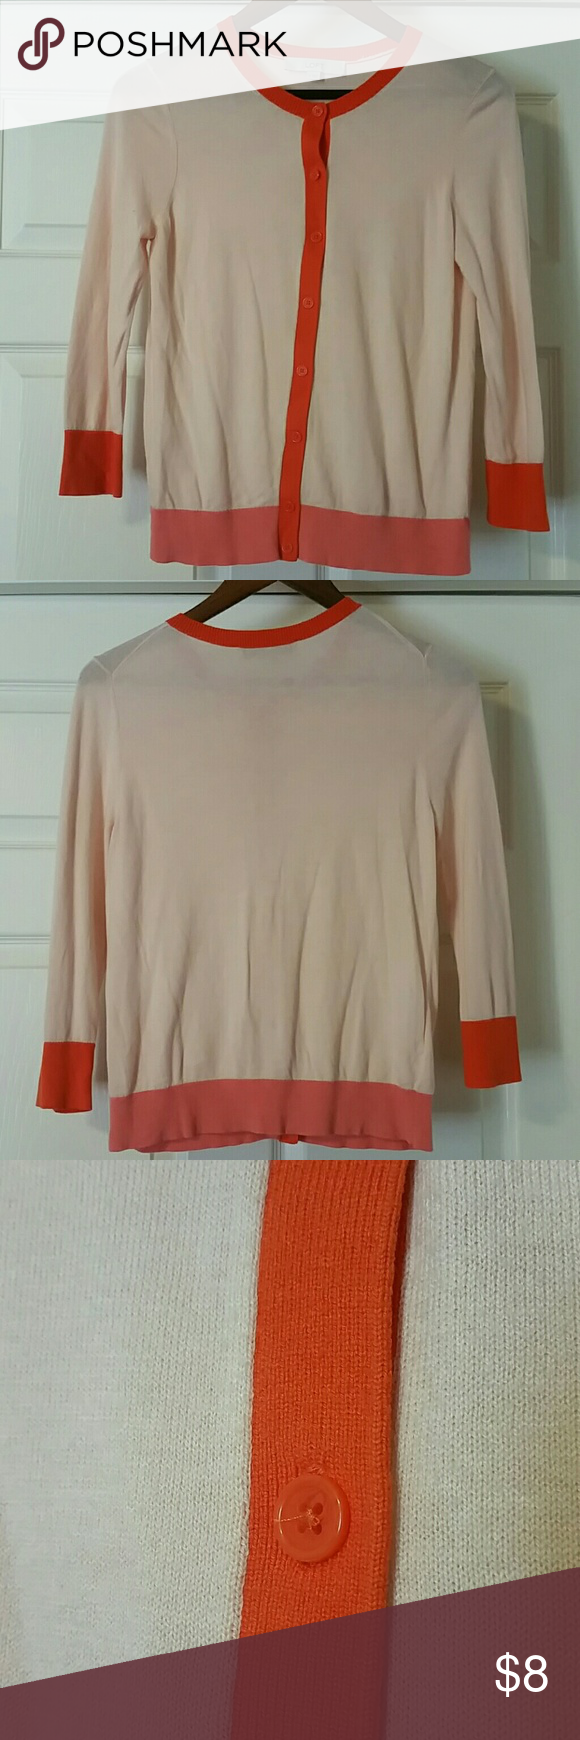 Loft soft peach orange and pink sweater | Peach and Conditioning